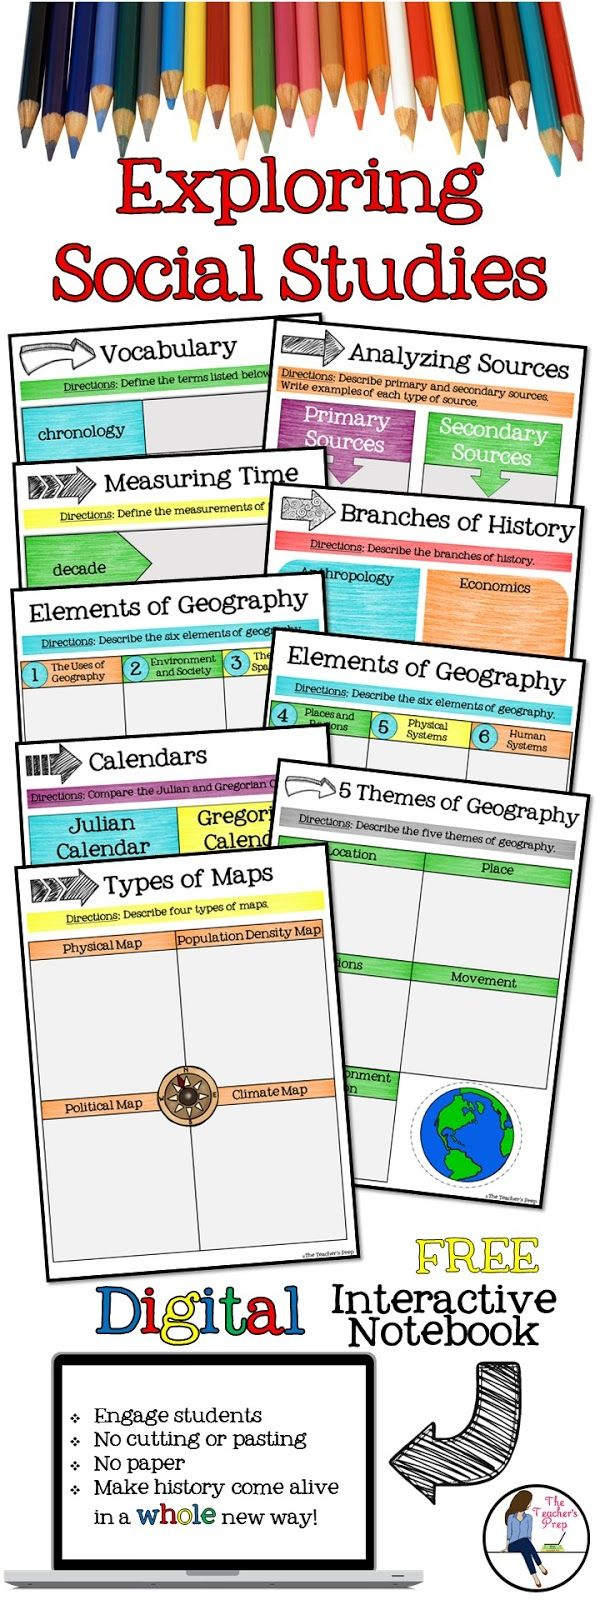 The Teacher's Prep: Digital Interactive Notebooks in the Social Studies Classroom